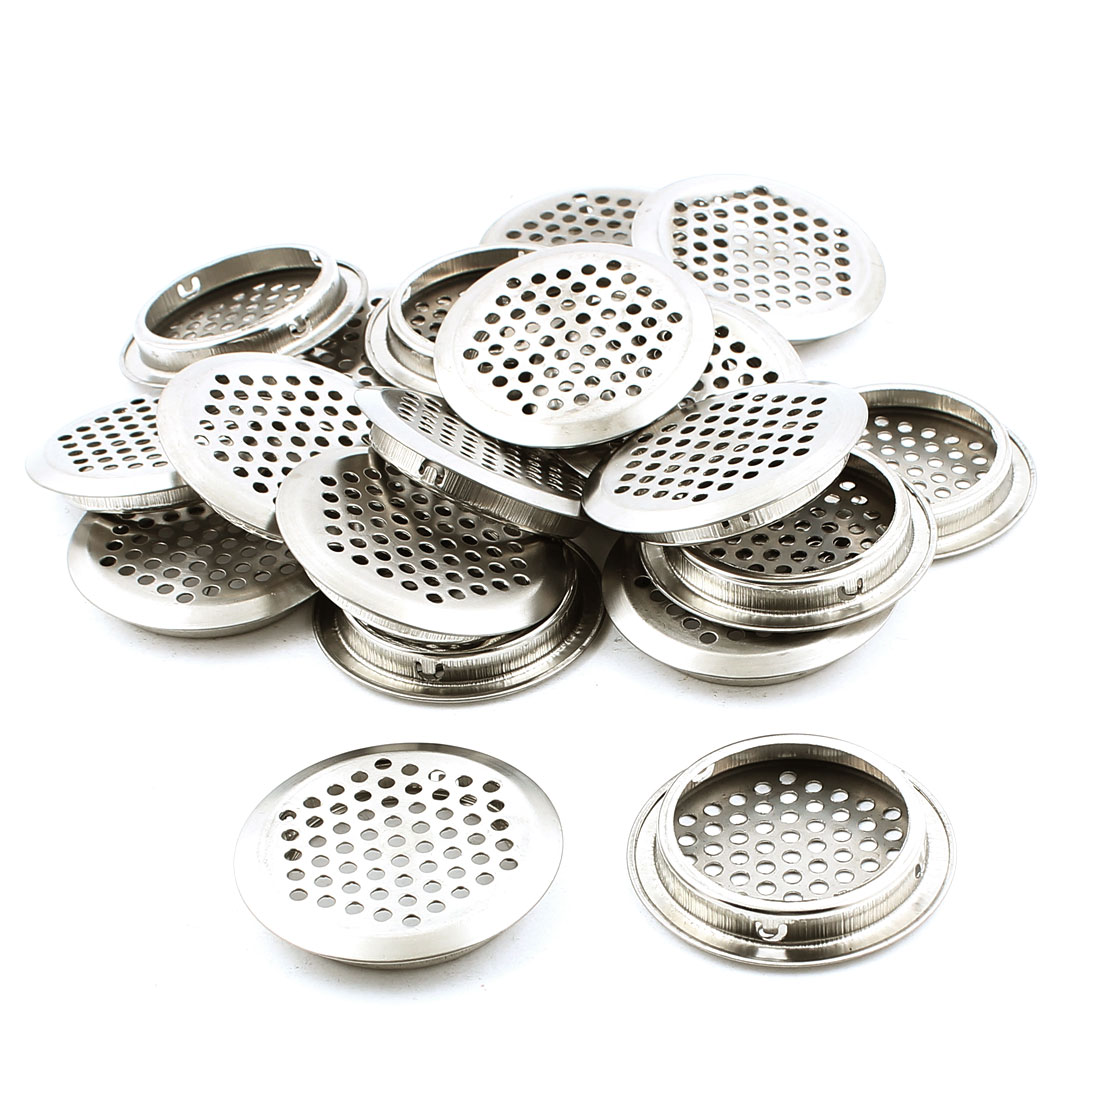 Cupboards Cabinets Ceiling 53mm Bottom Dia Metal Air Vent Cover 20PCS